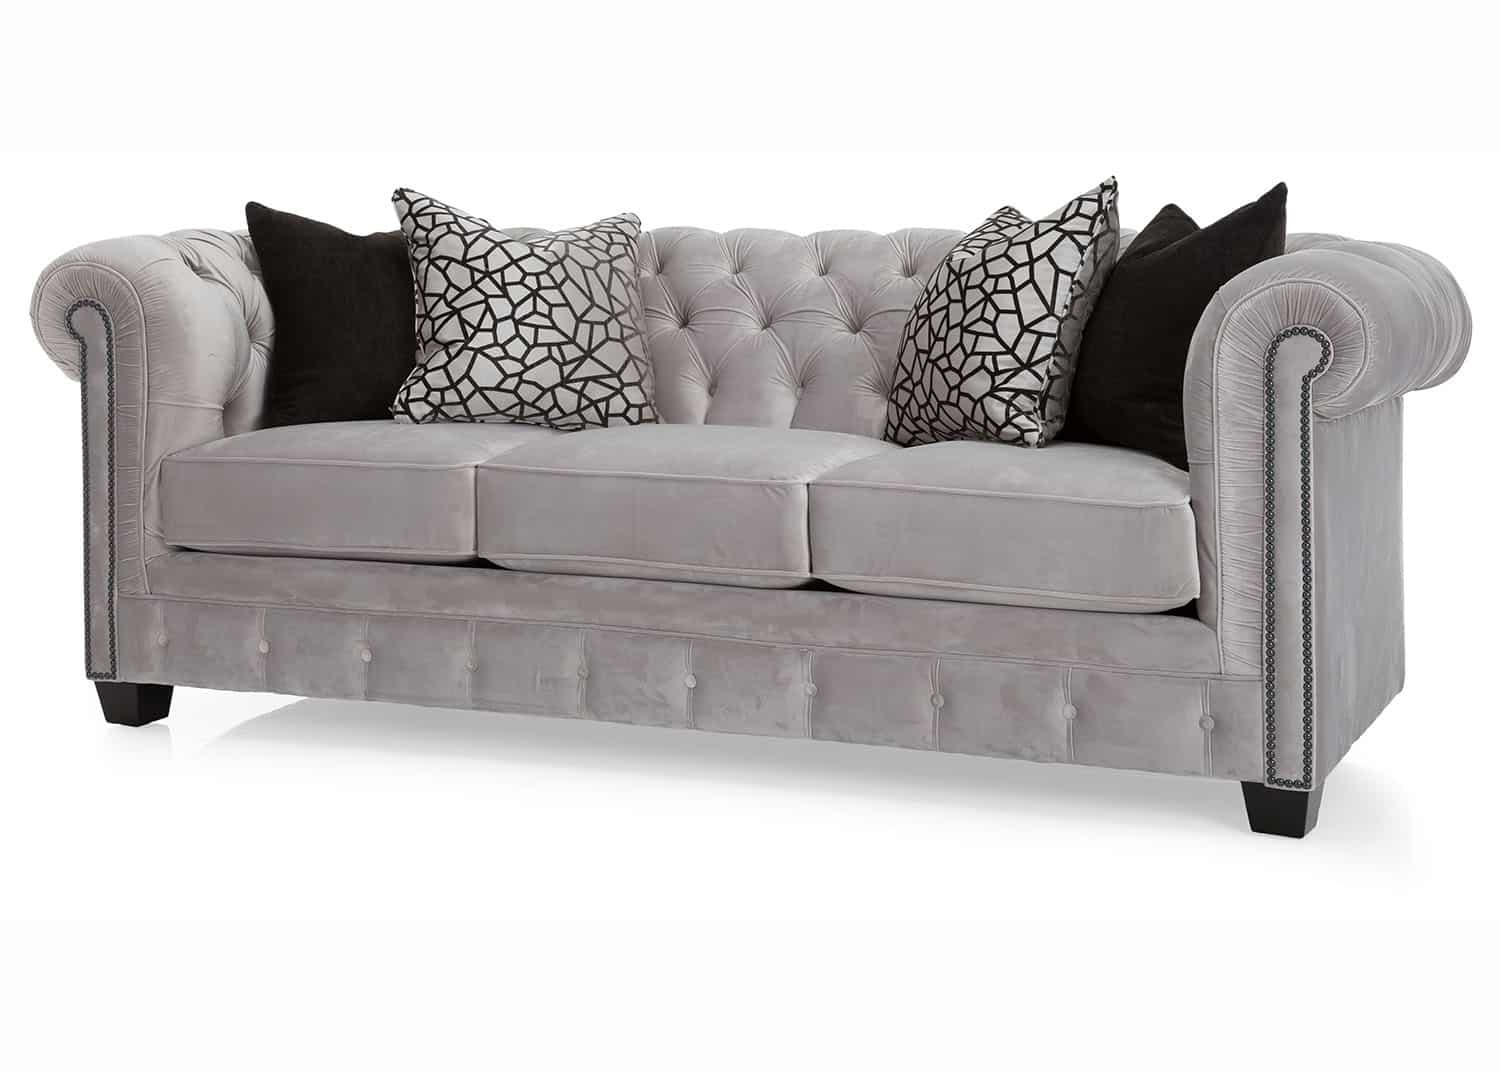 Chatsworth canap chesterfield mobilart decor high end for Meuble sofa montreal